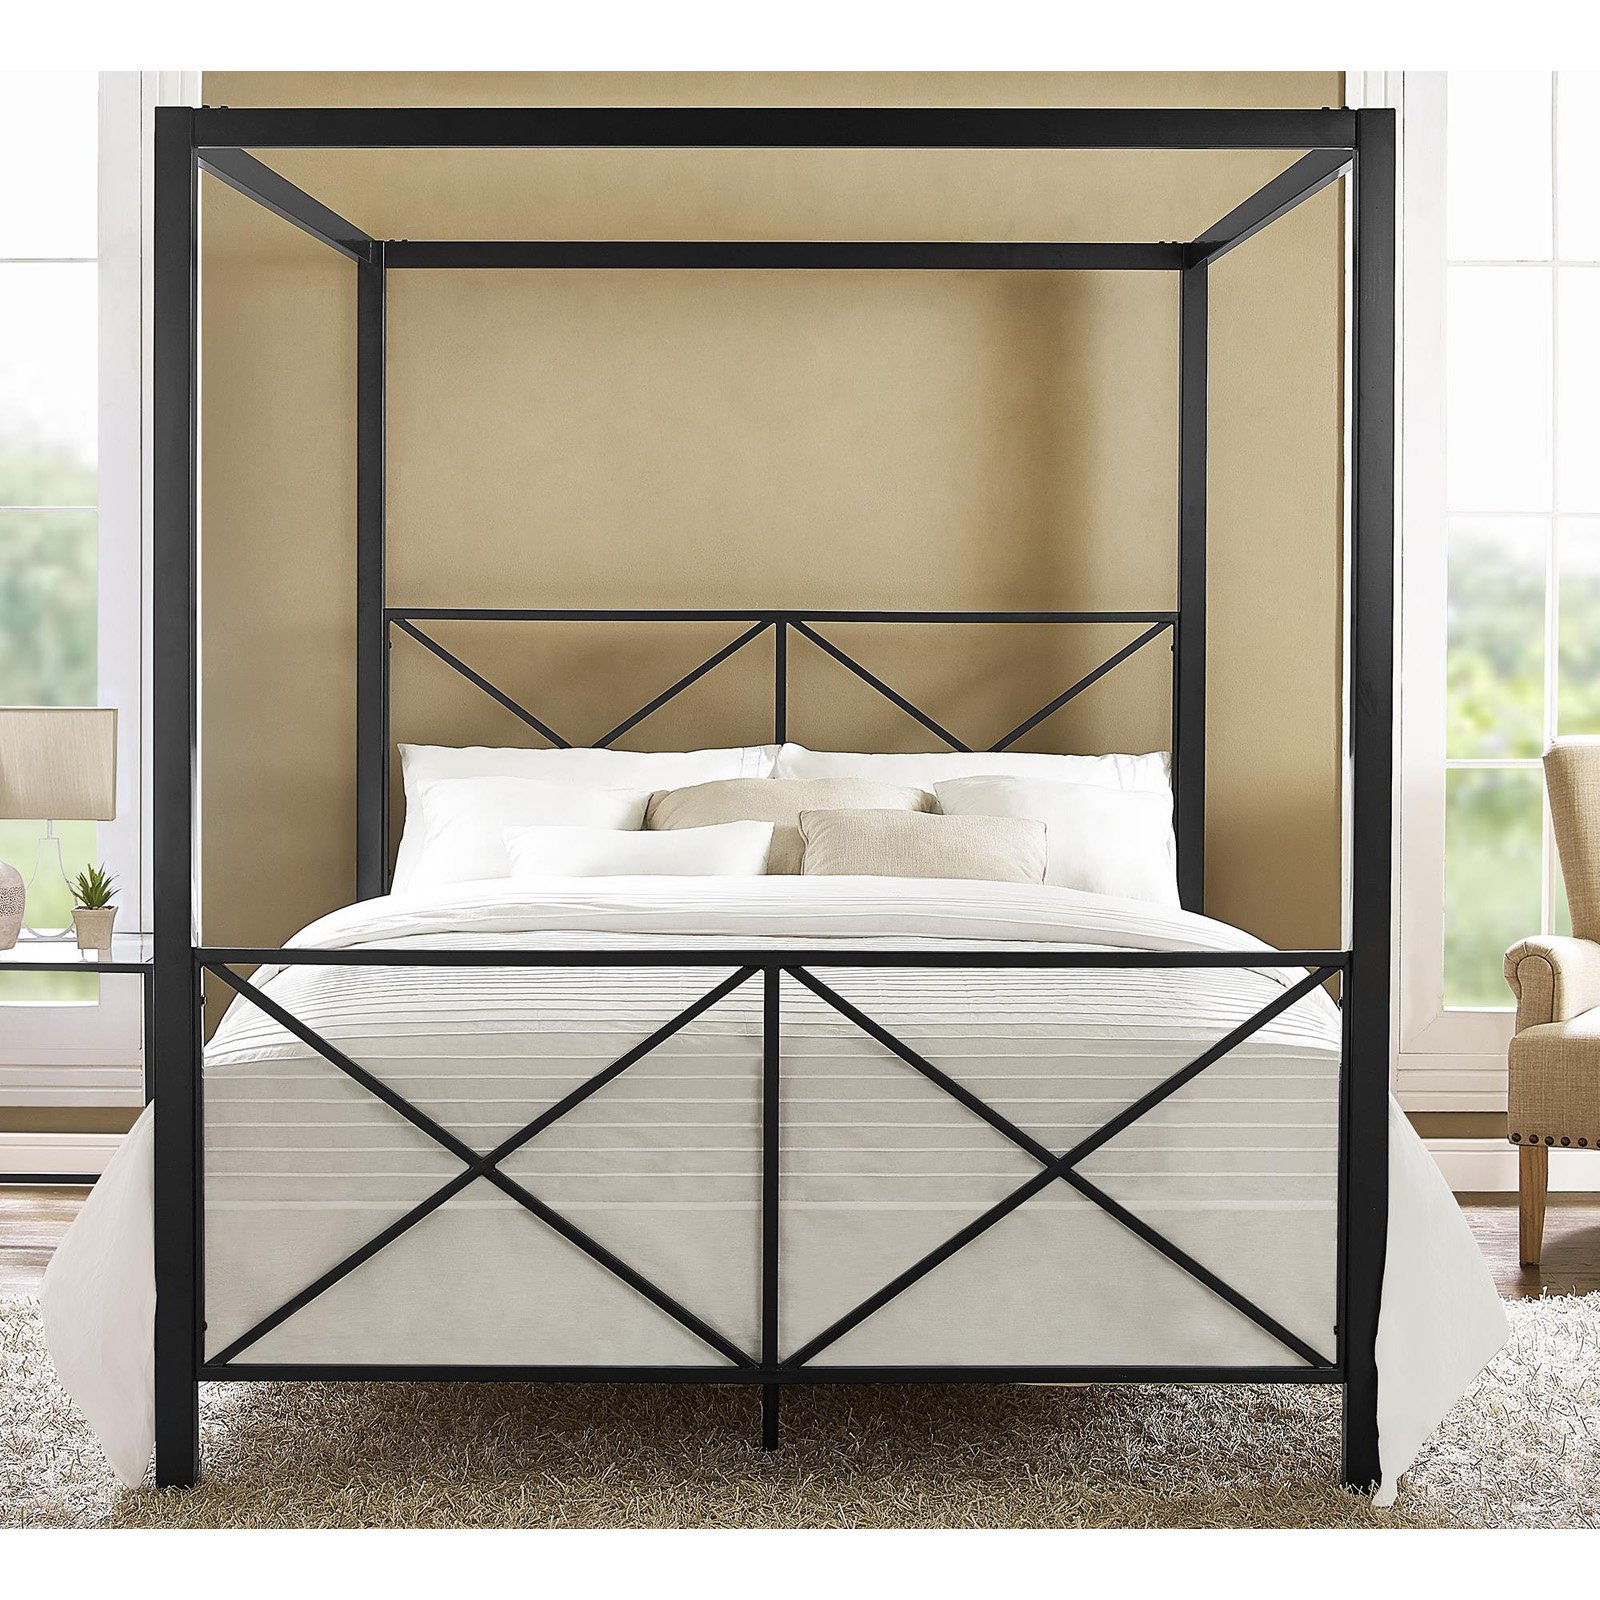 DHP Rosedale Metal Canopy Bed, Queen Size, Multiple Colors by Dorel Home Products